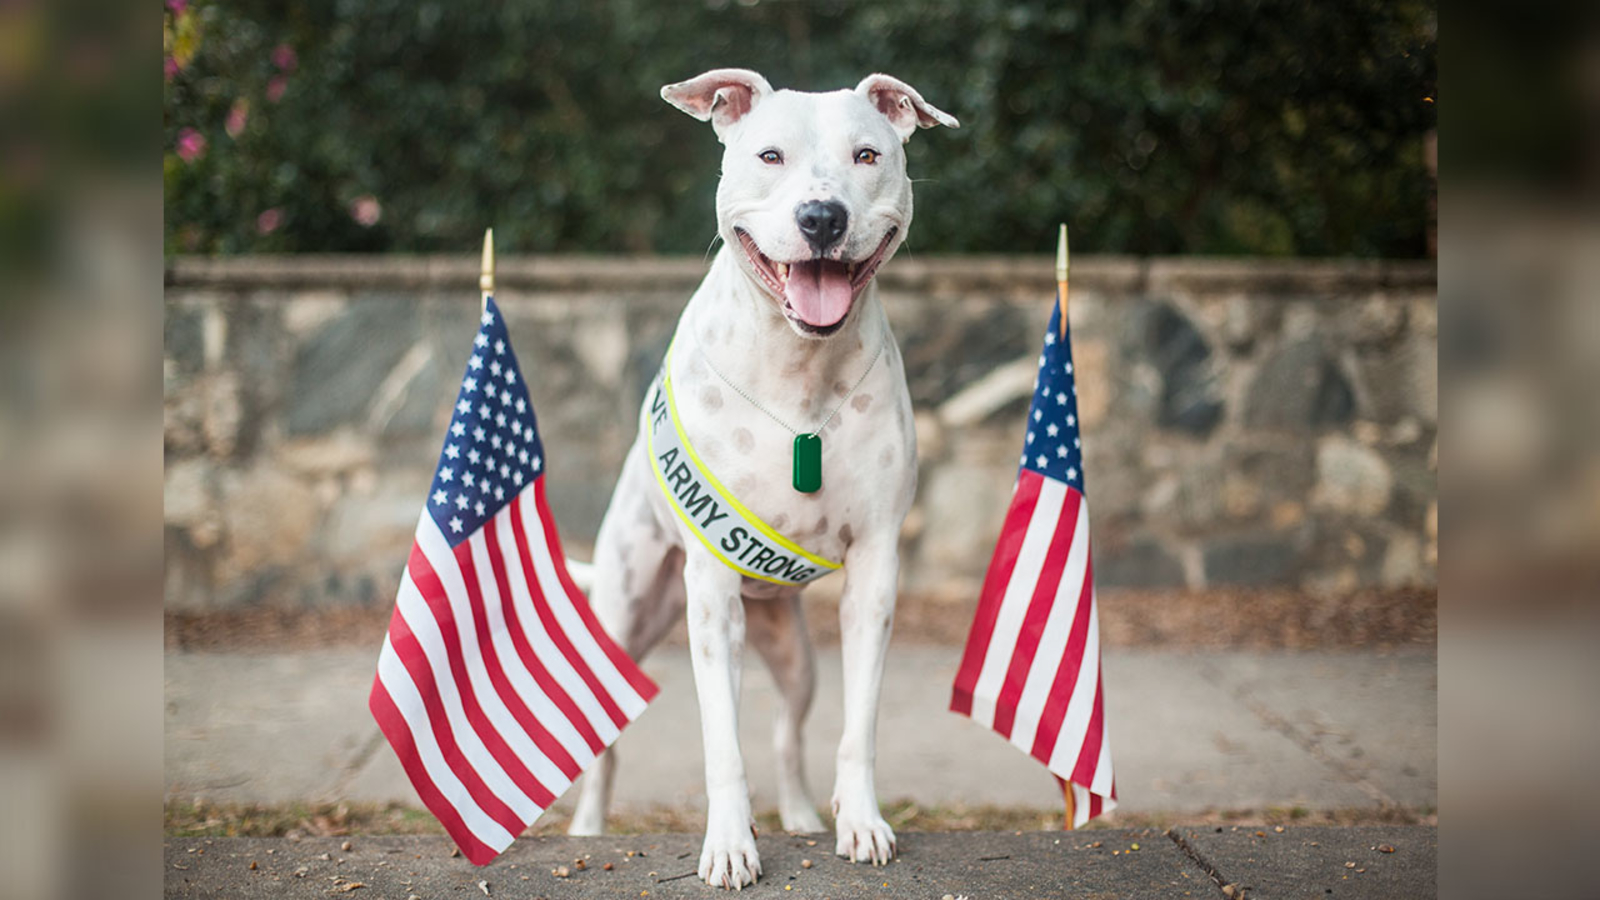 SPCA of Wake County waives pet adoption fees for veterans, military families through Memorial Day